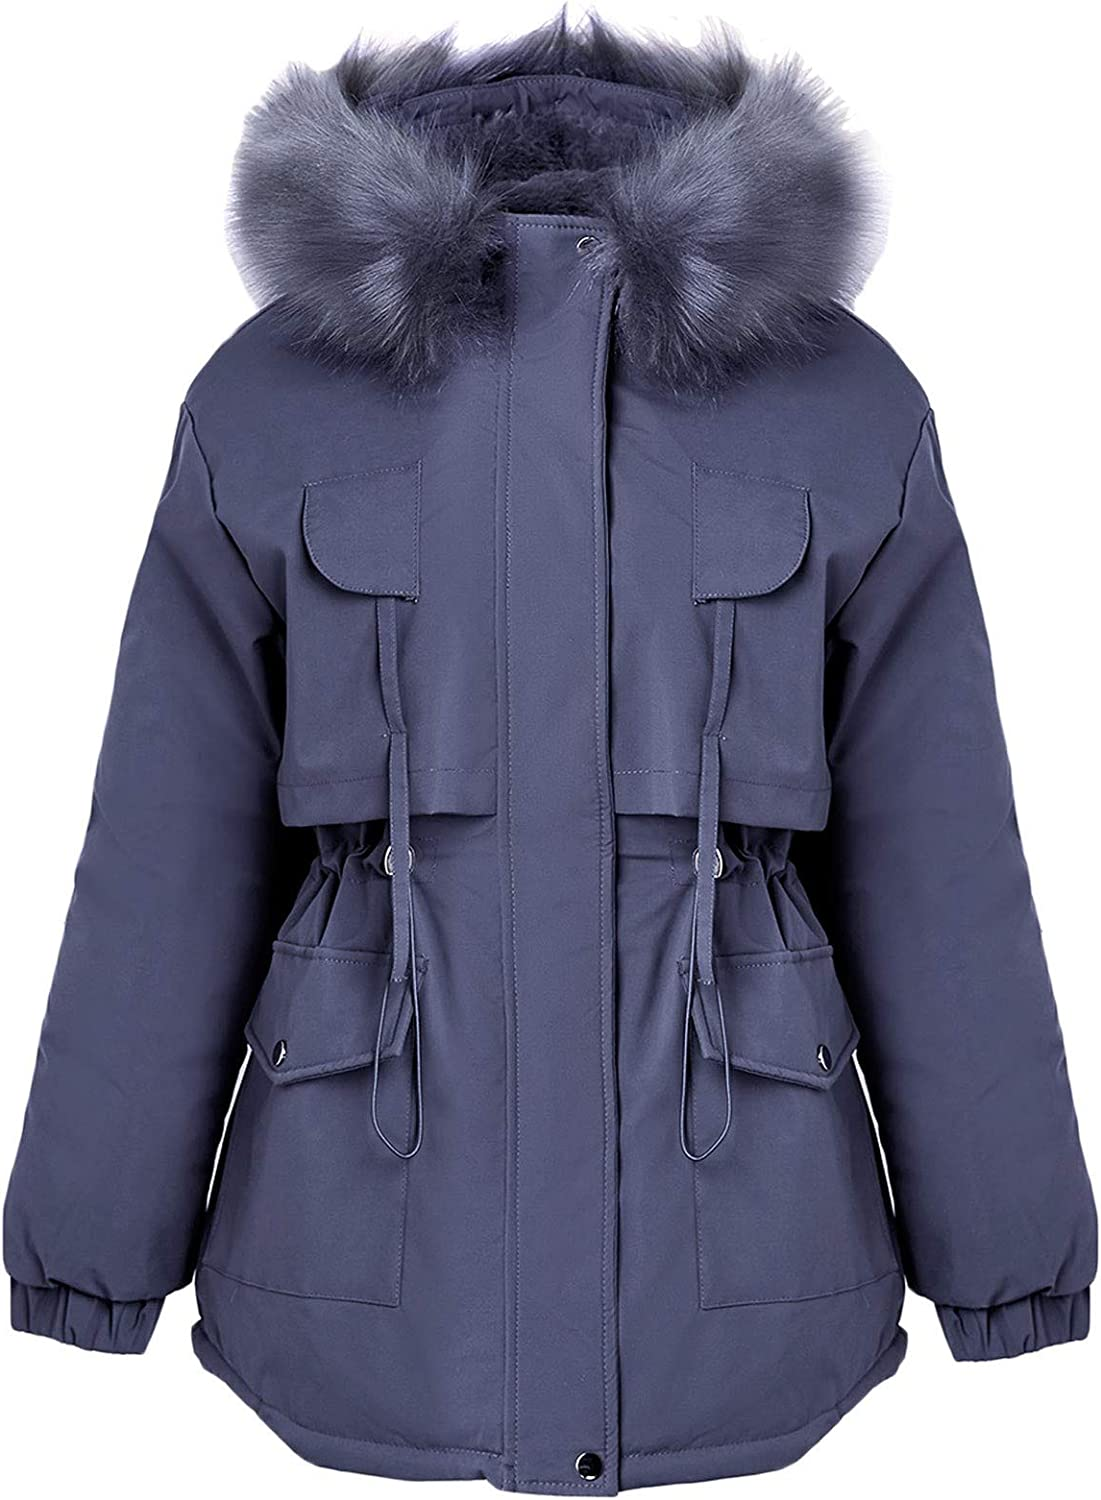 Thatso Women Faux Fur Hooded Winter Coats Warm Fleece Lined Parkas Cotton Padded Quilted Jacket Outwear with Zip Pockets(XL,Blue)